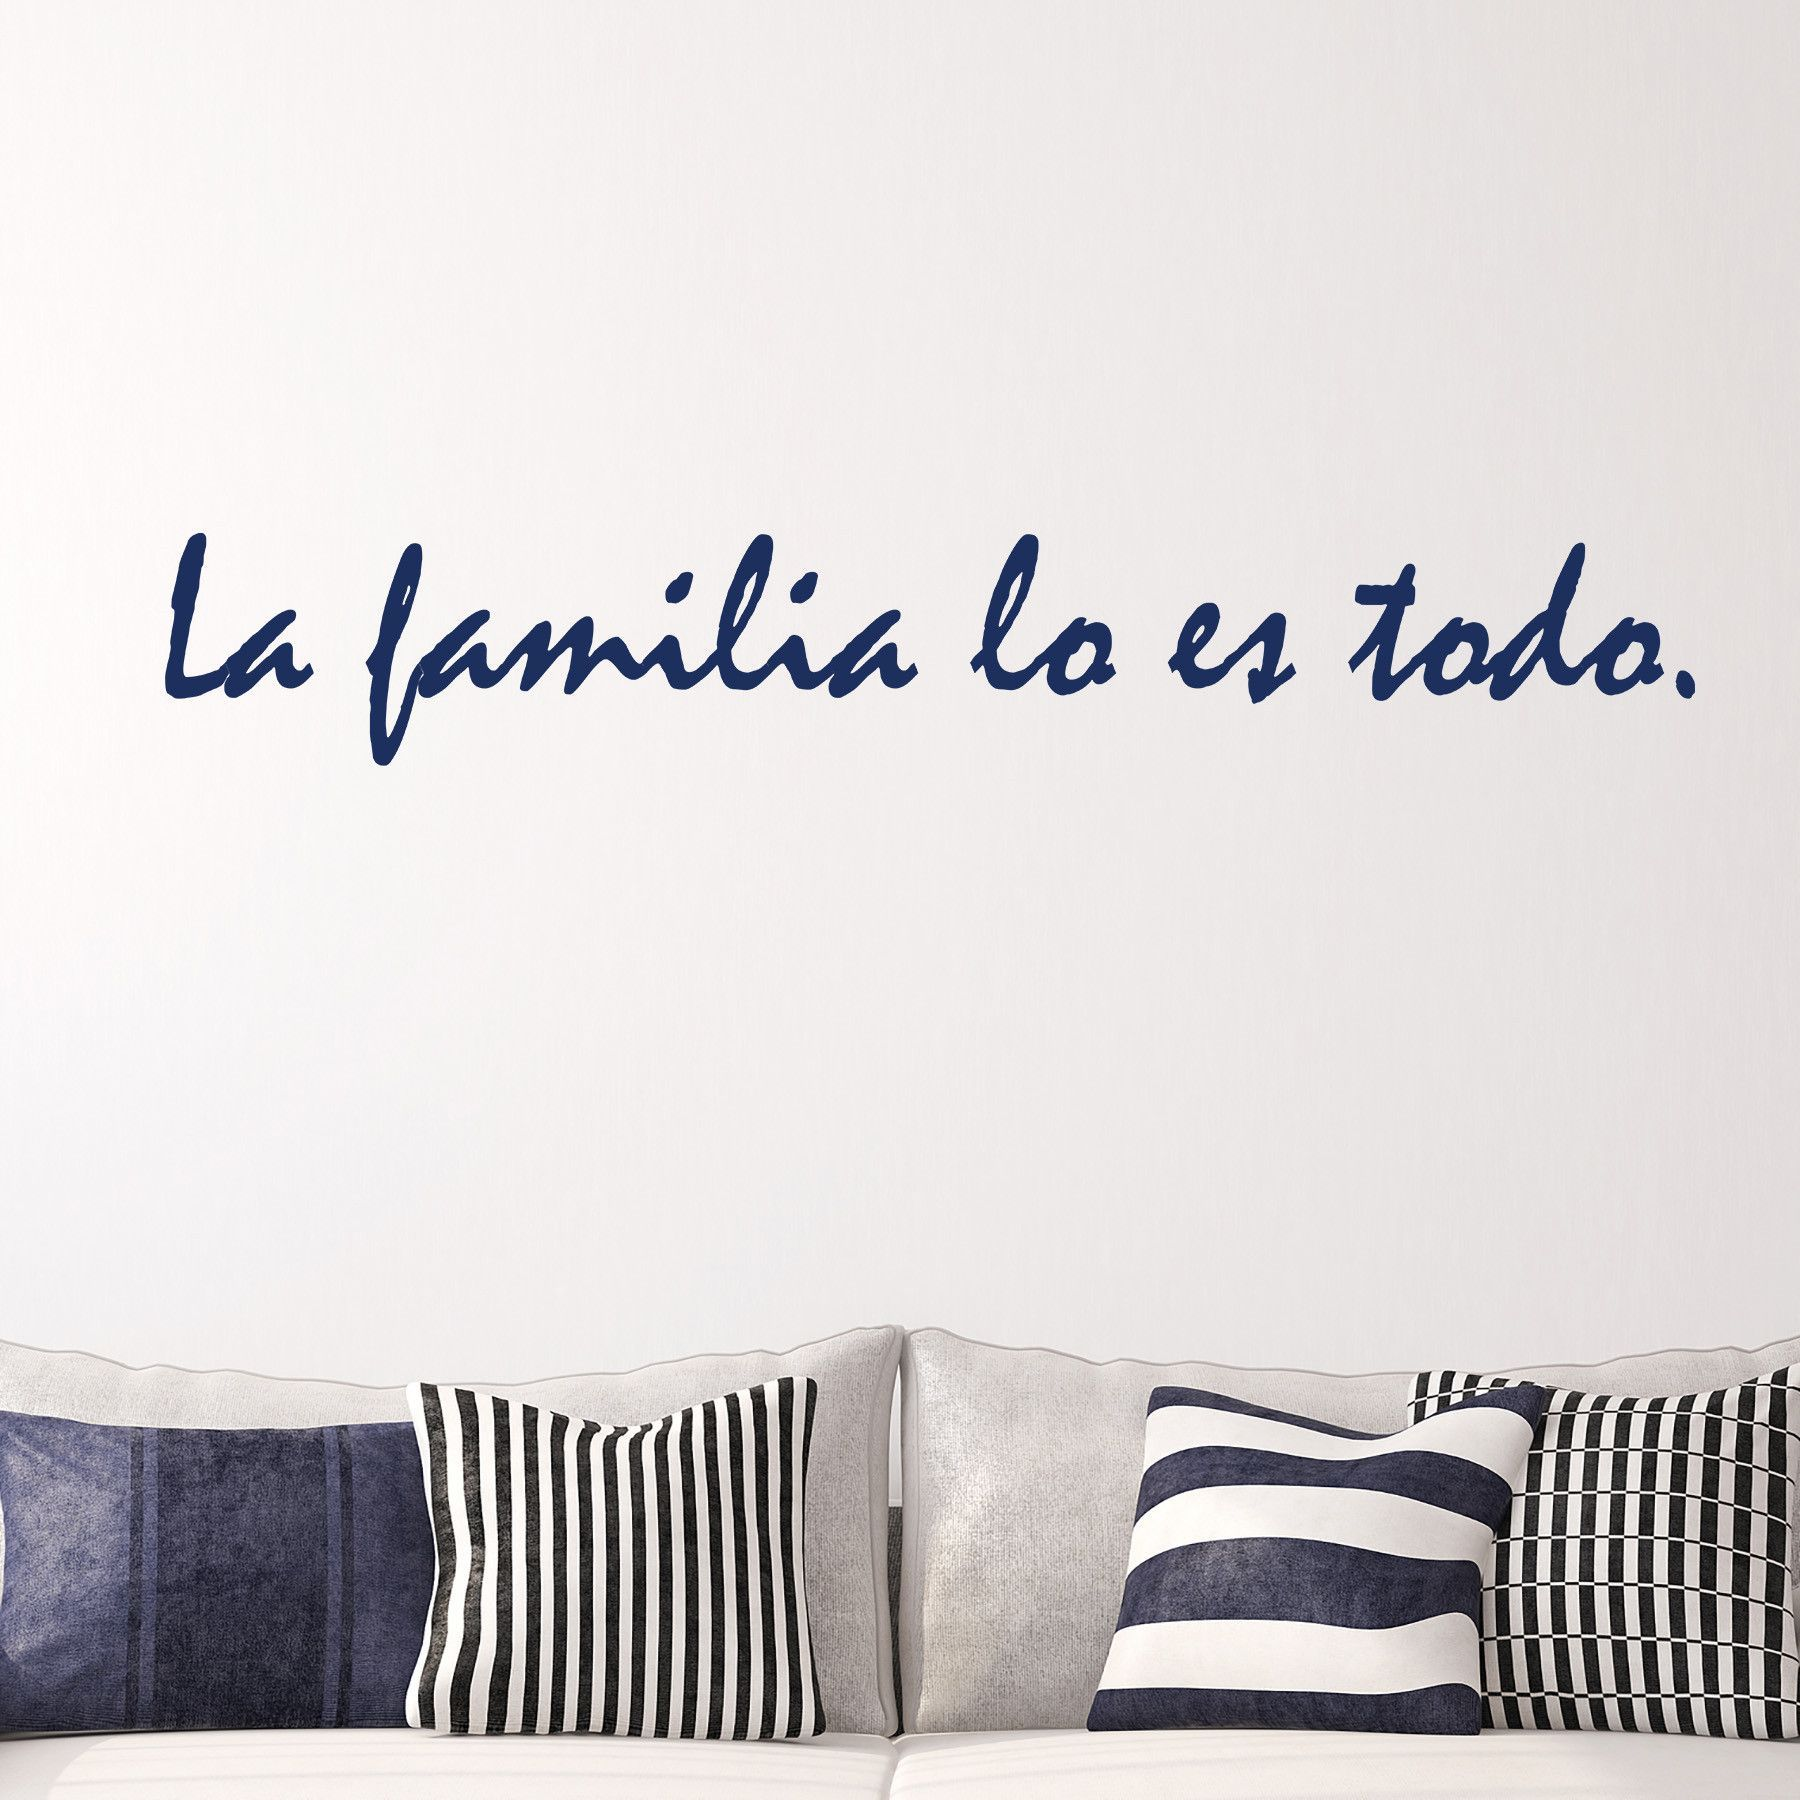 This spanish la familia wall quote translates to family is everything select the size and color that best fits your needs keep in mind sizes are close